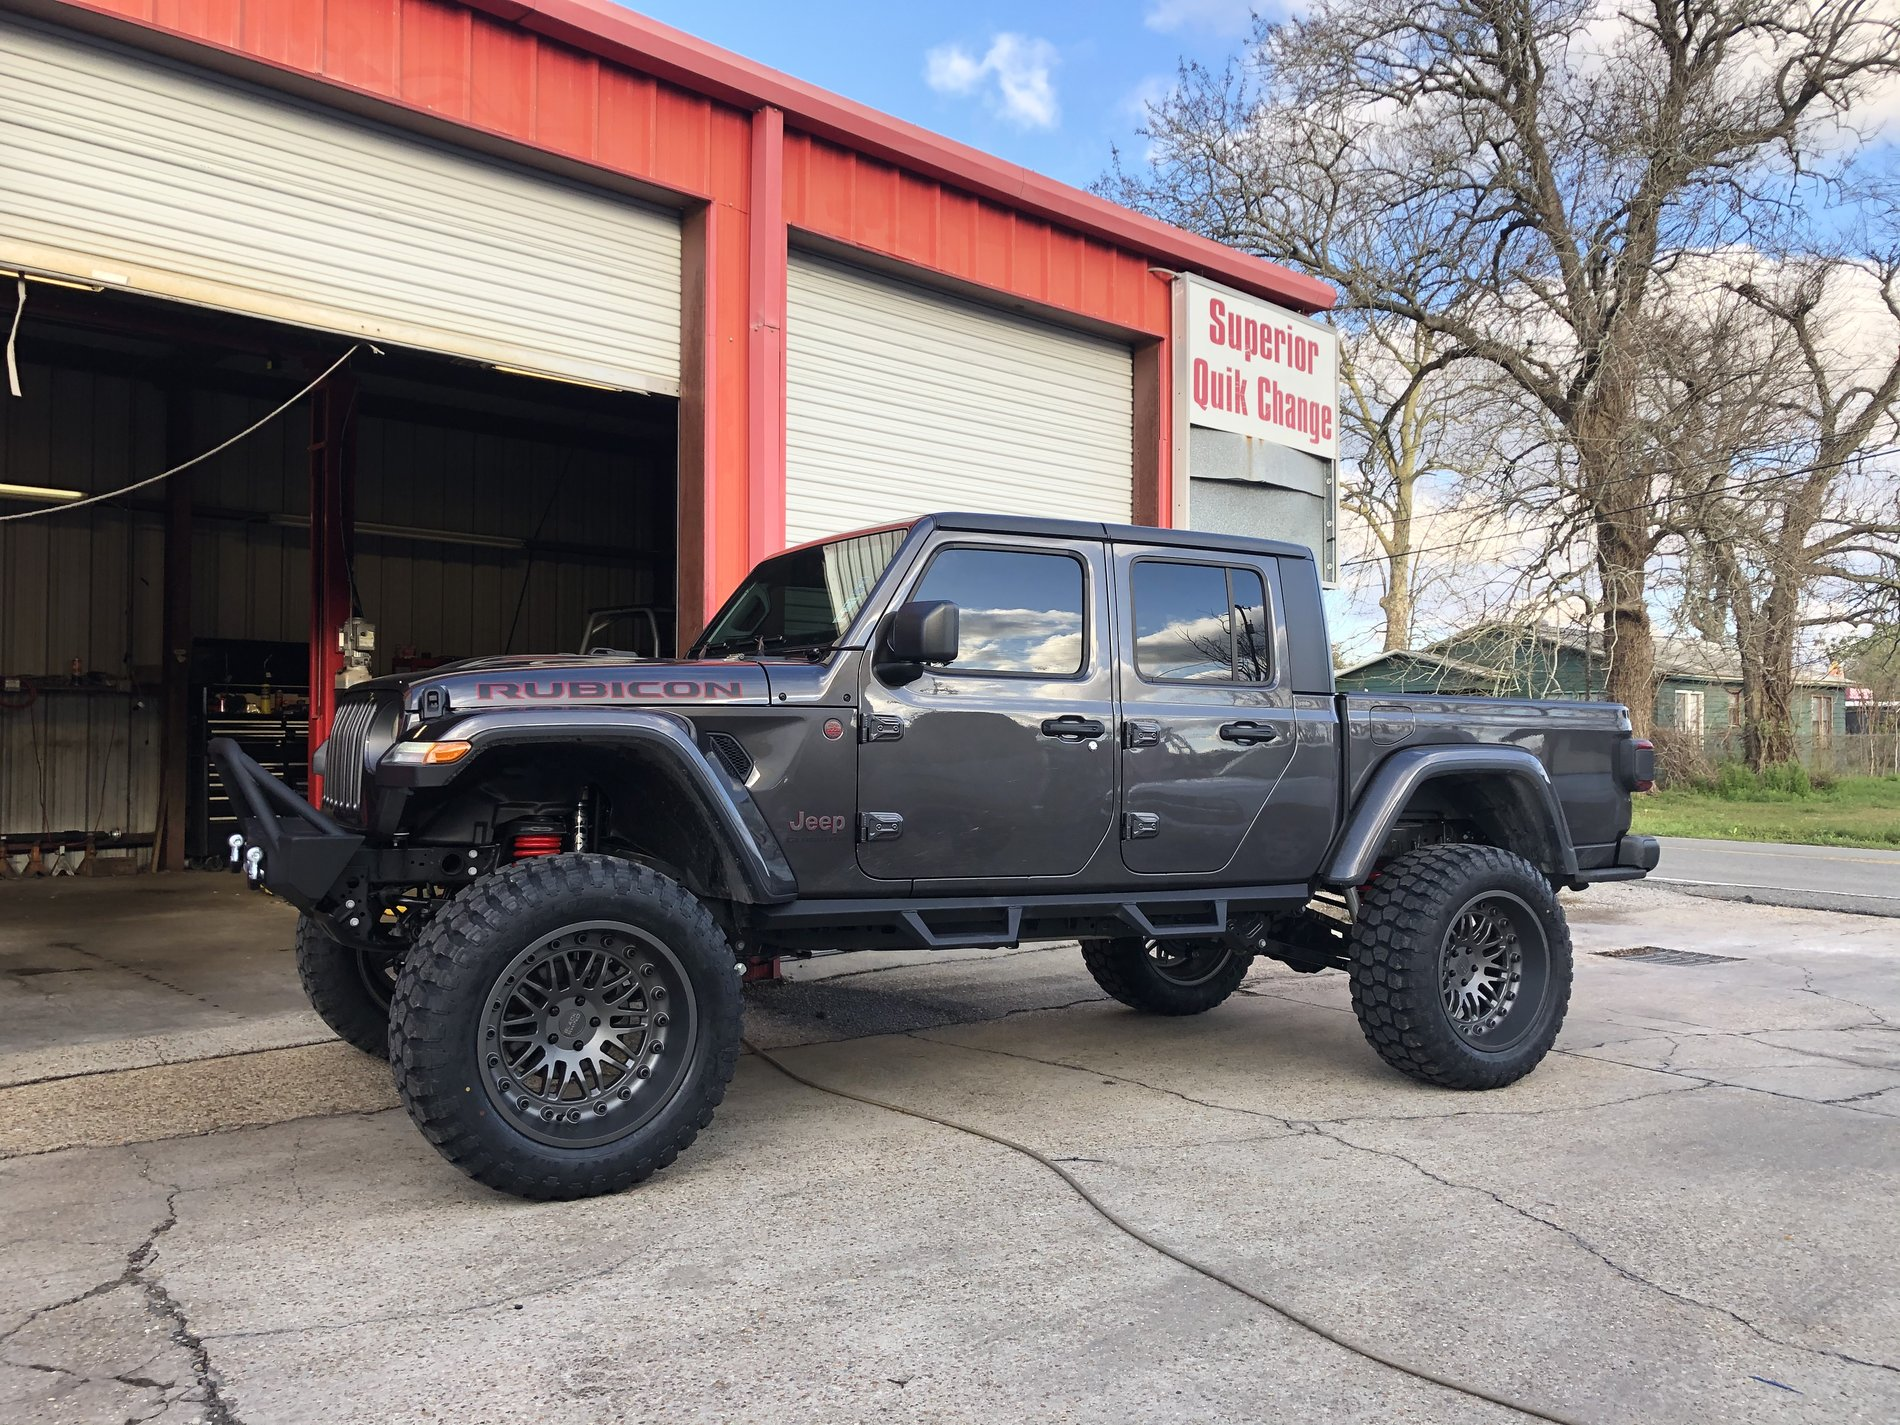 2020 Jeep Gladiator Rubicon W 6 Rough Country Lifts Jeep Gladiator Forum Jeepgladiatorforum Com